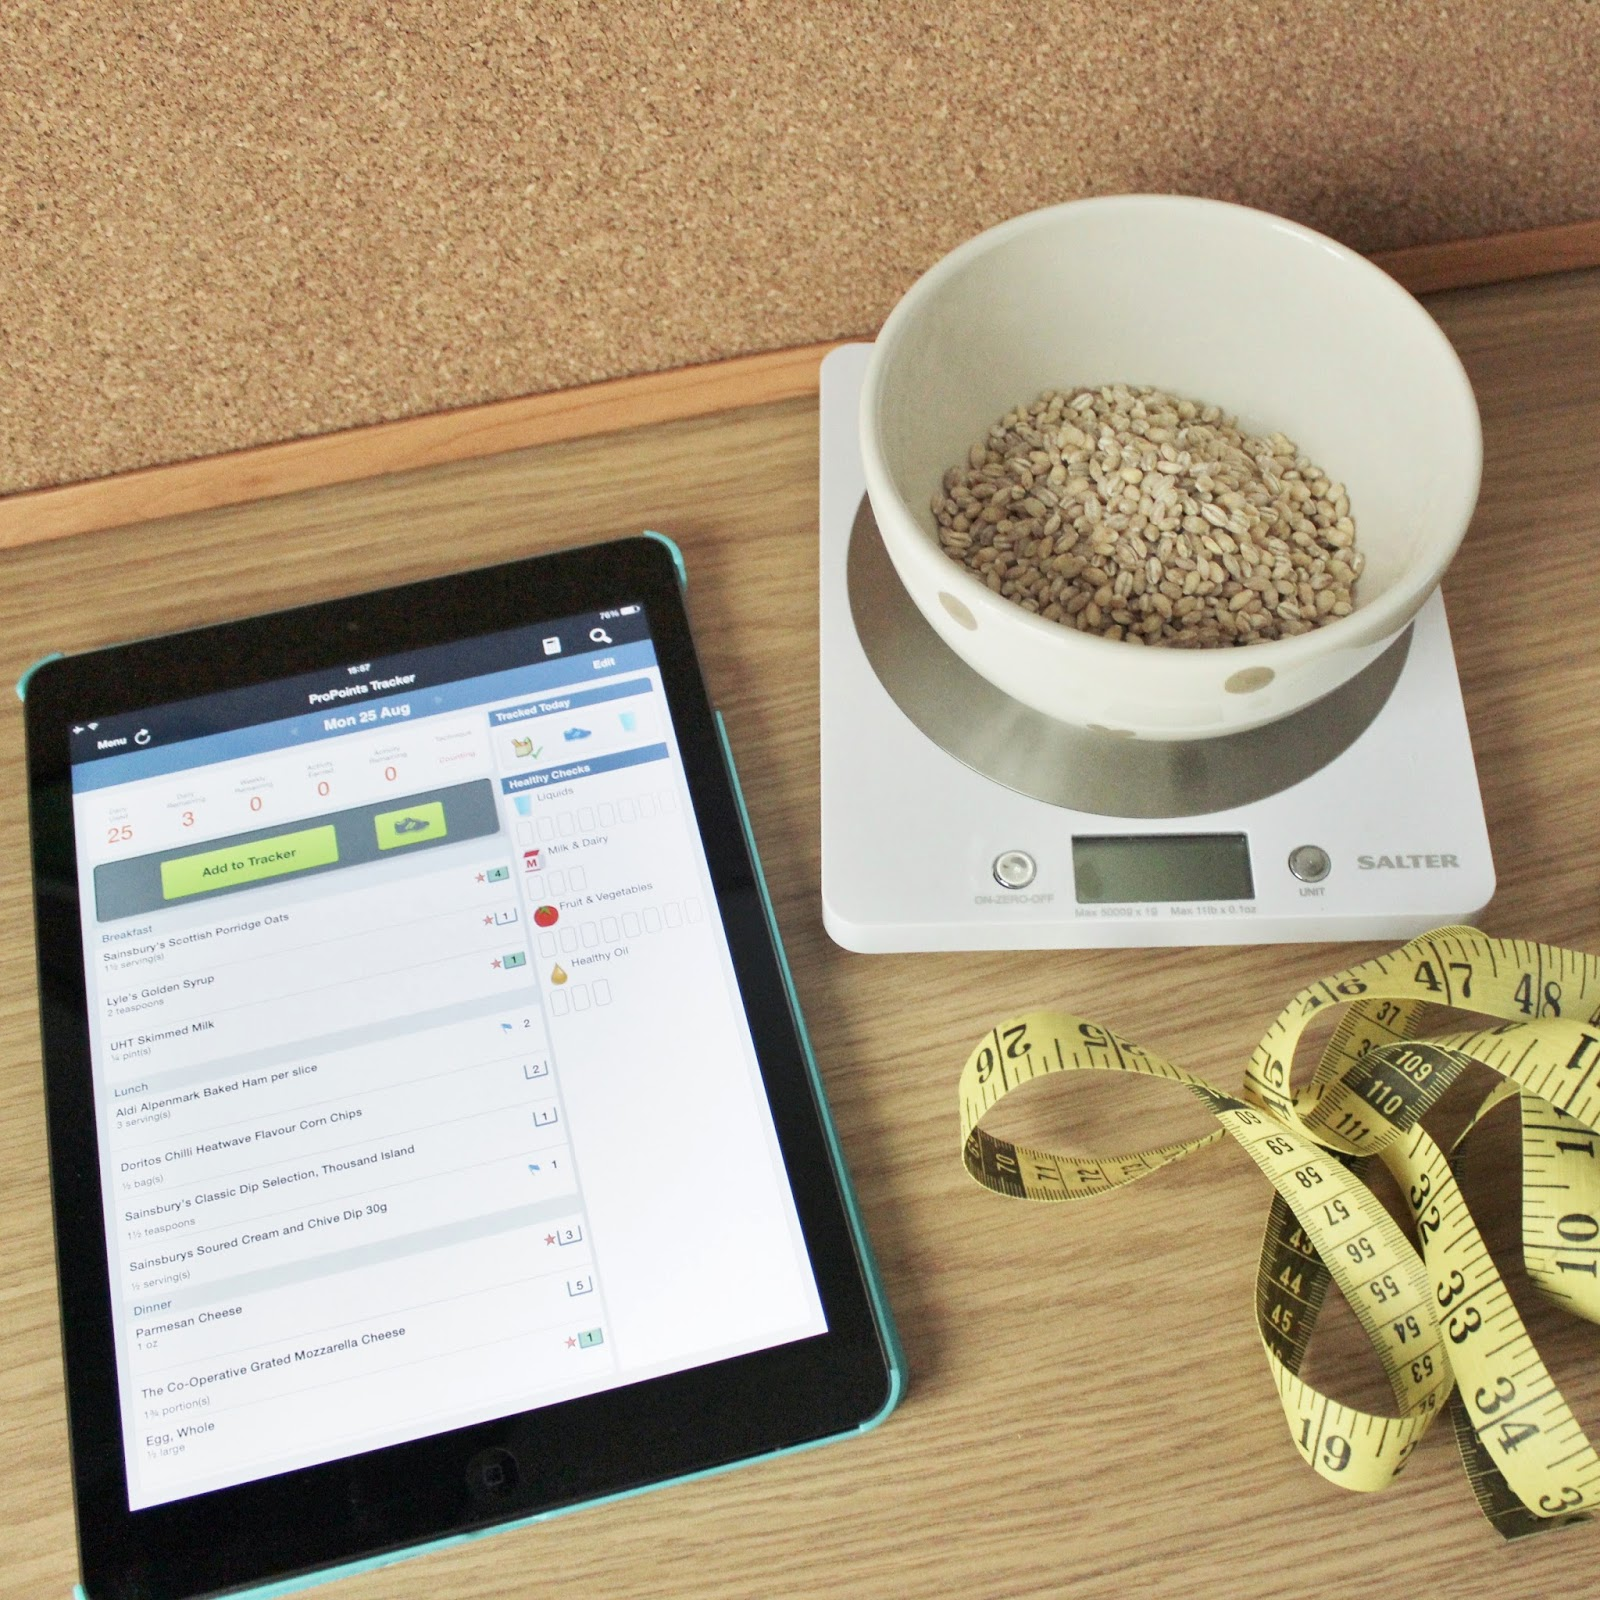 WeightWatchers app, Scales and Measuring tape